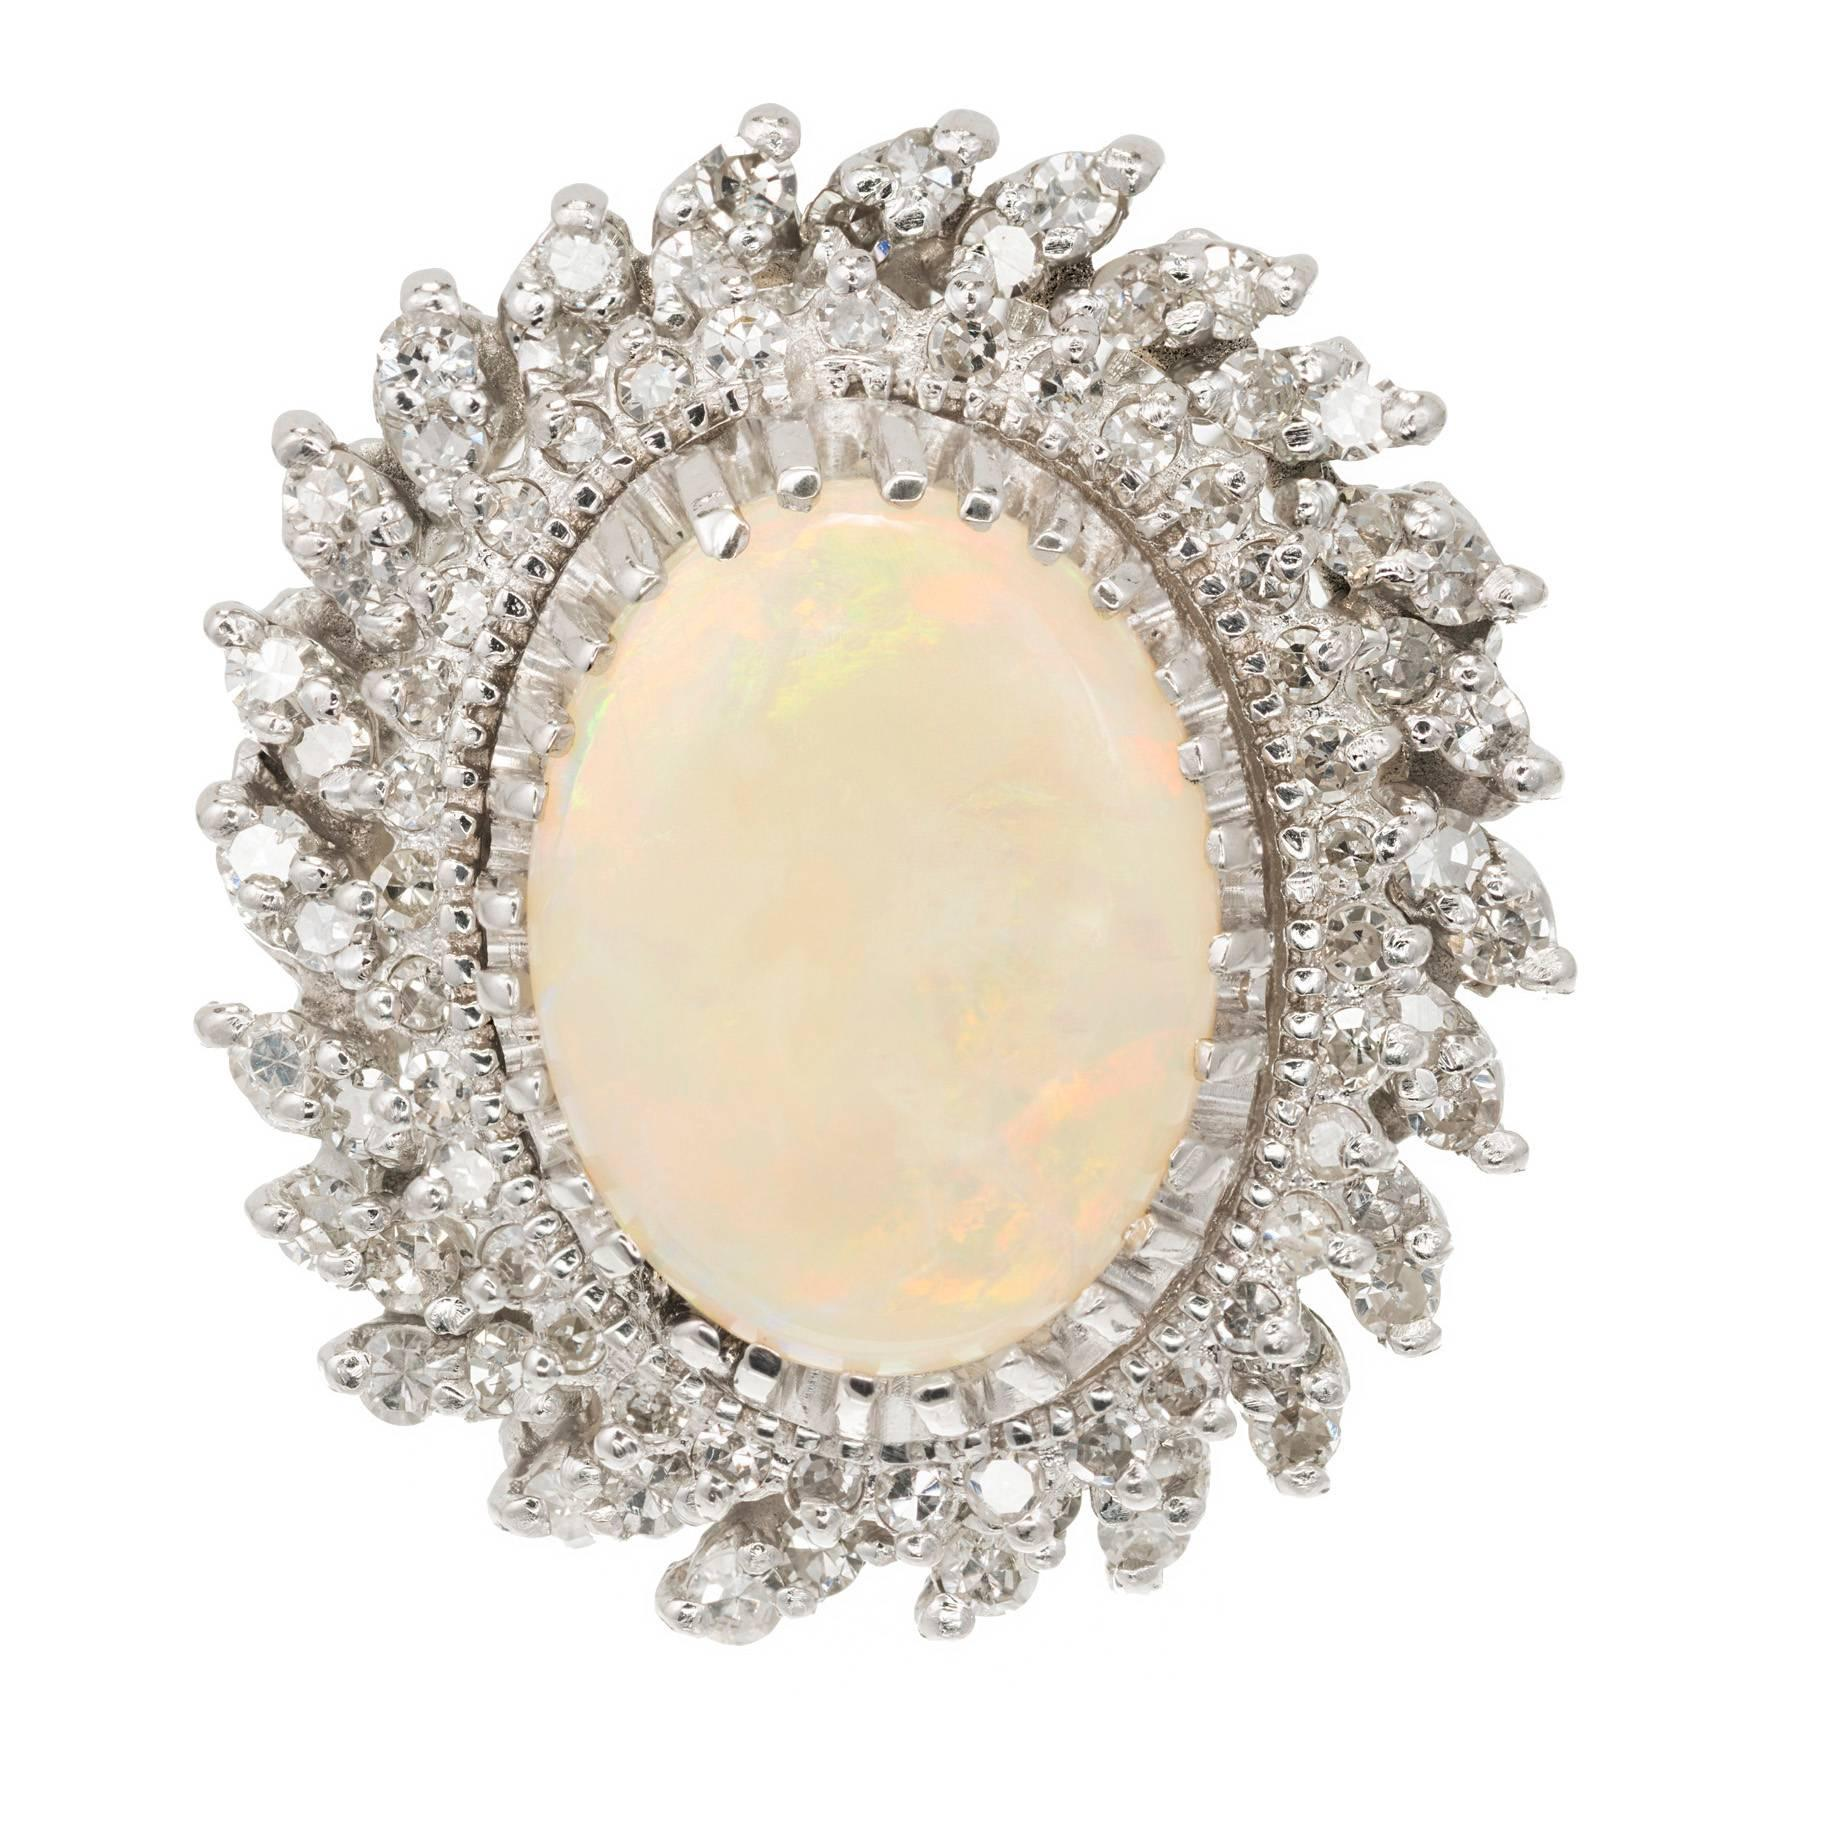 4.50 Carat Oval Opal Diamond Halo Gold Cocktail Ring